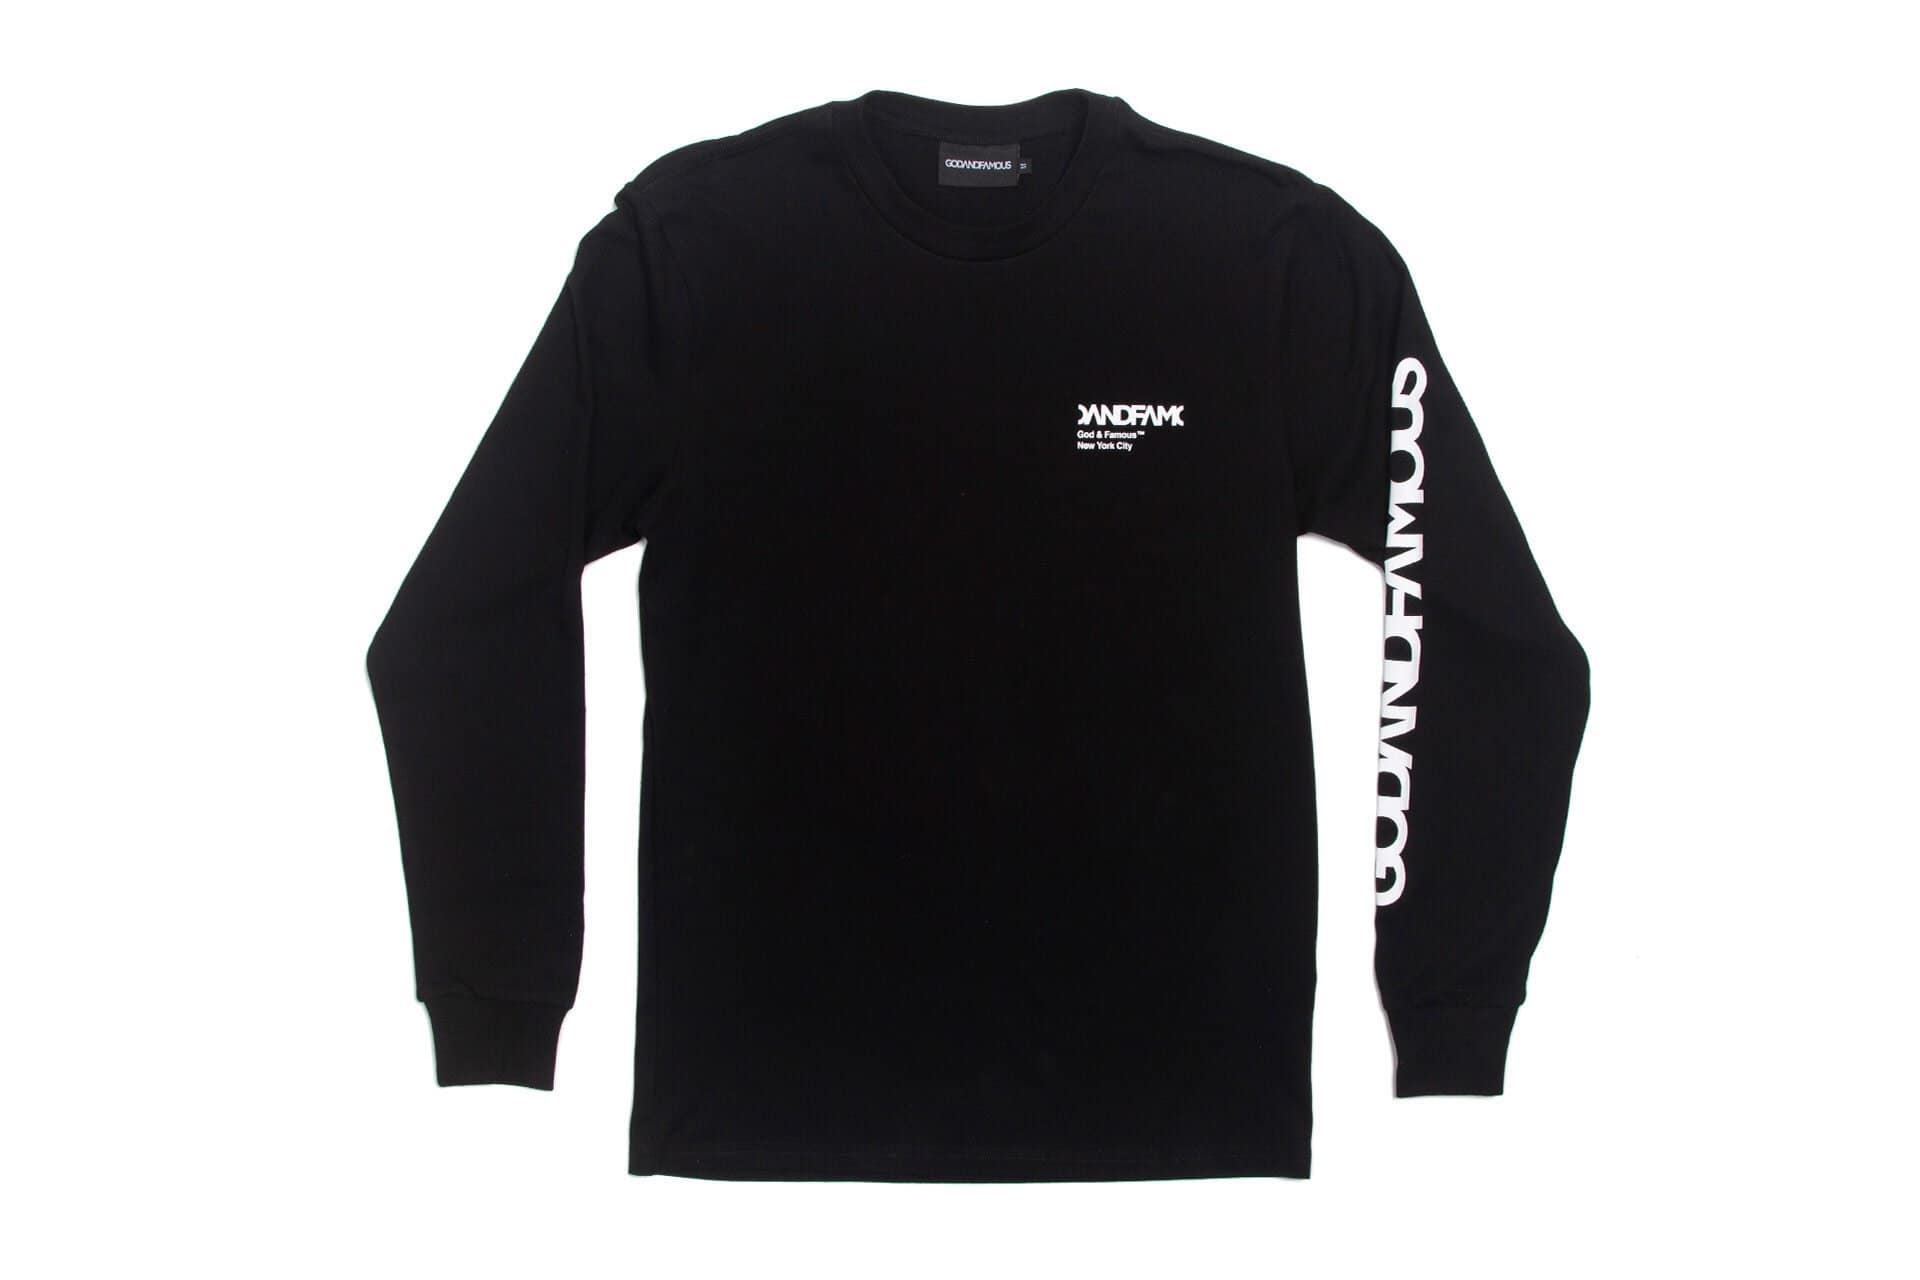 GOD & FAMOUS Team Black Long-Sleeved T-shirt